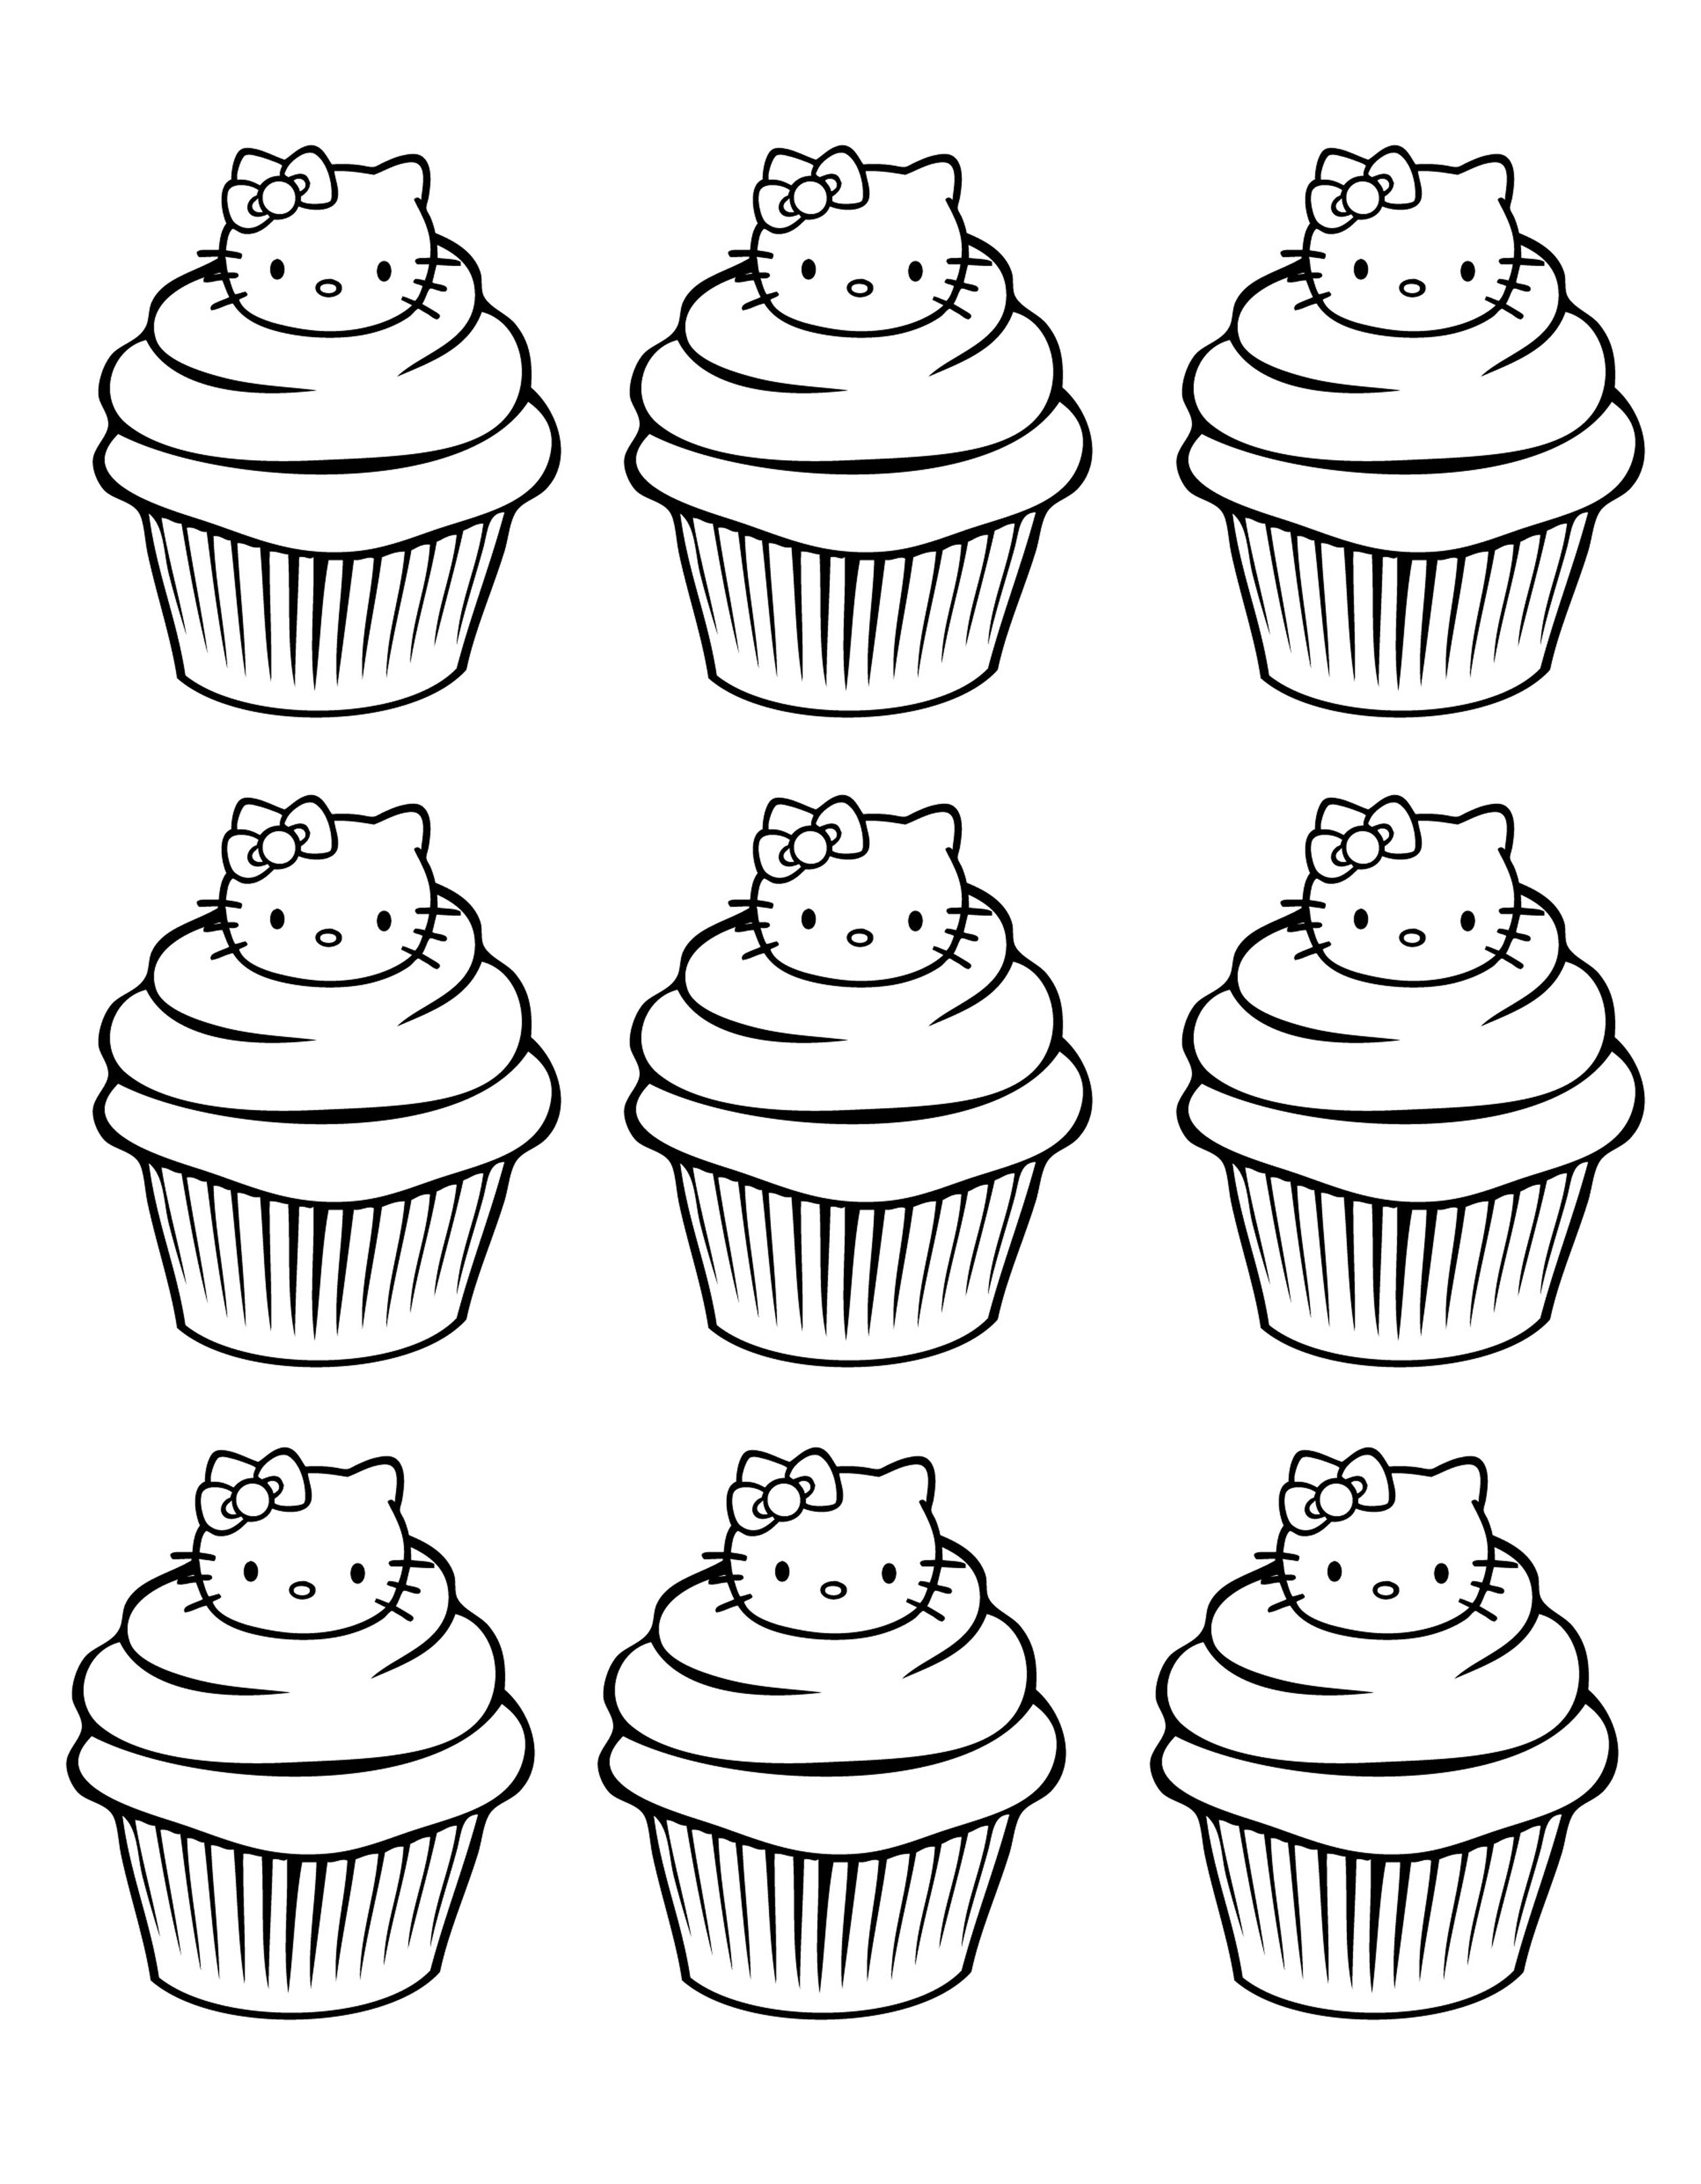 Cup cakes 56528